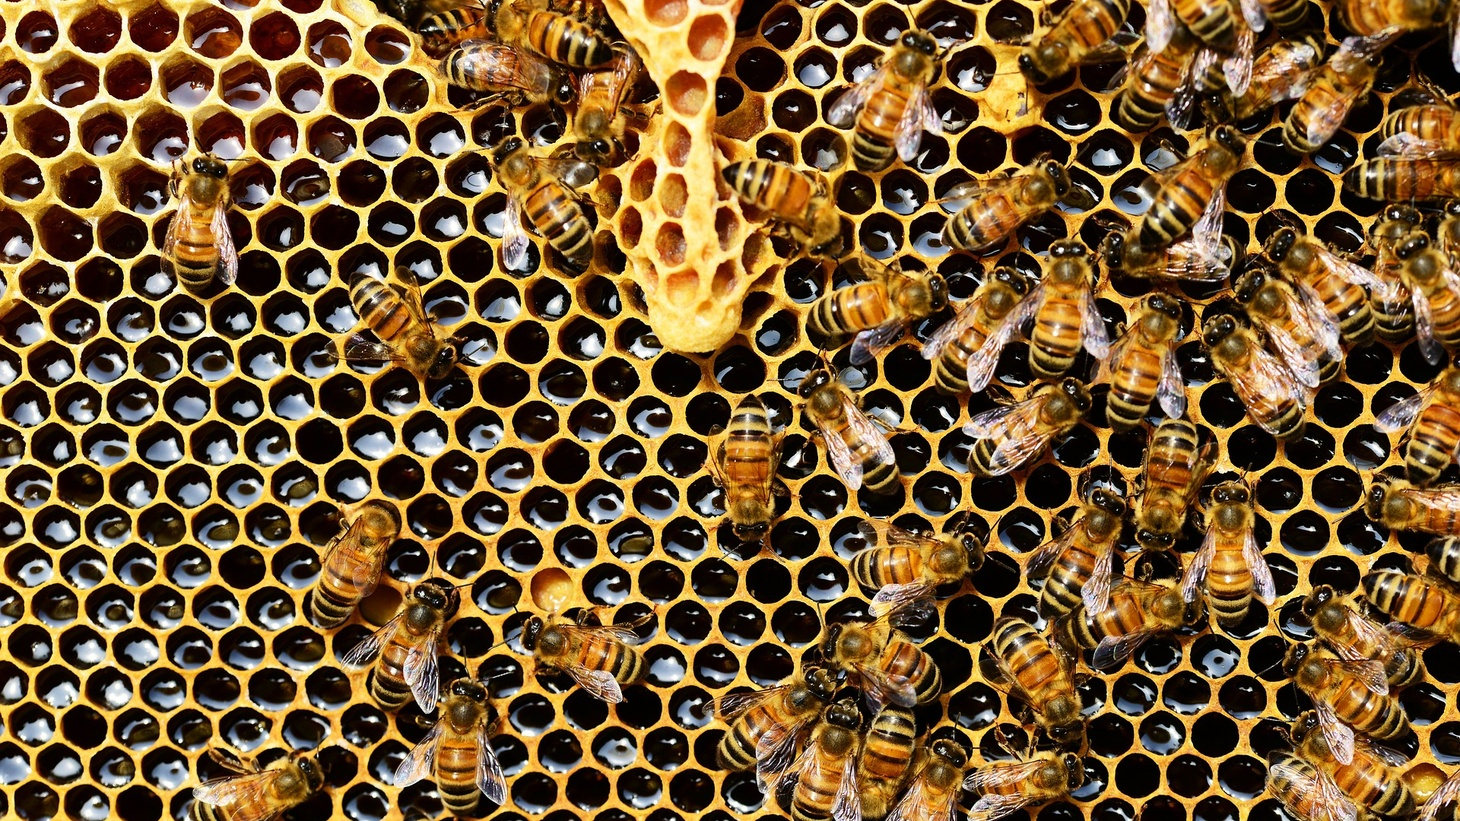 When people move out of buildings, critters such as honey bees sometimes move in.